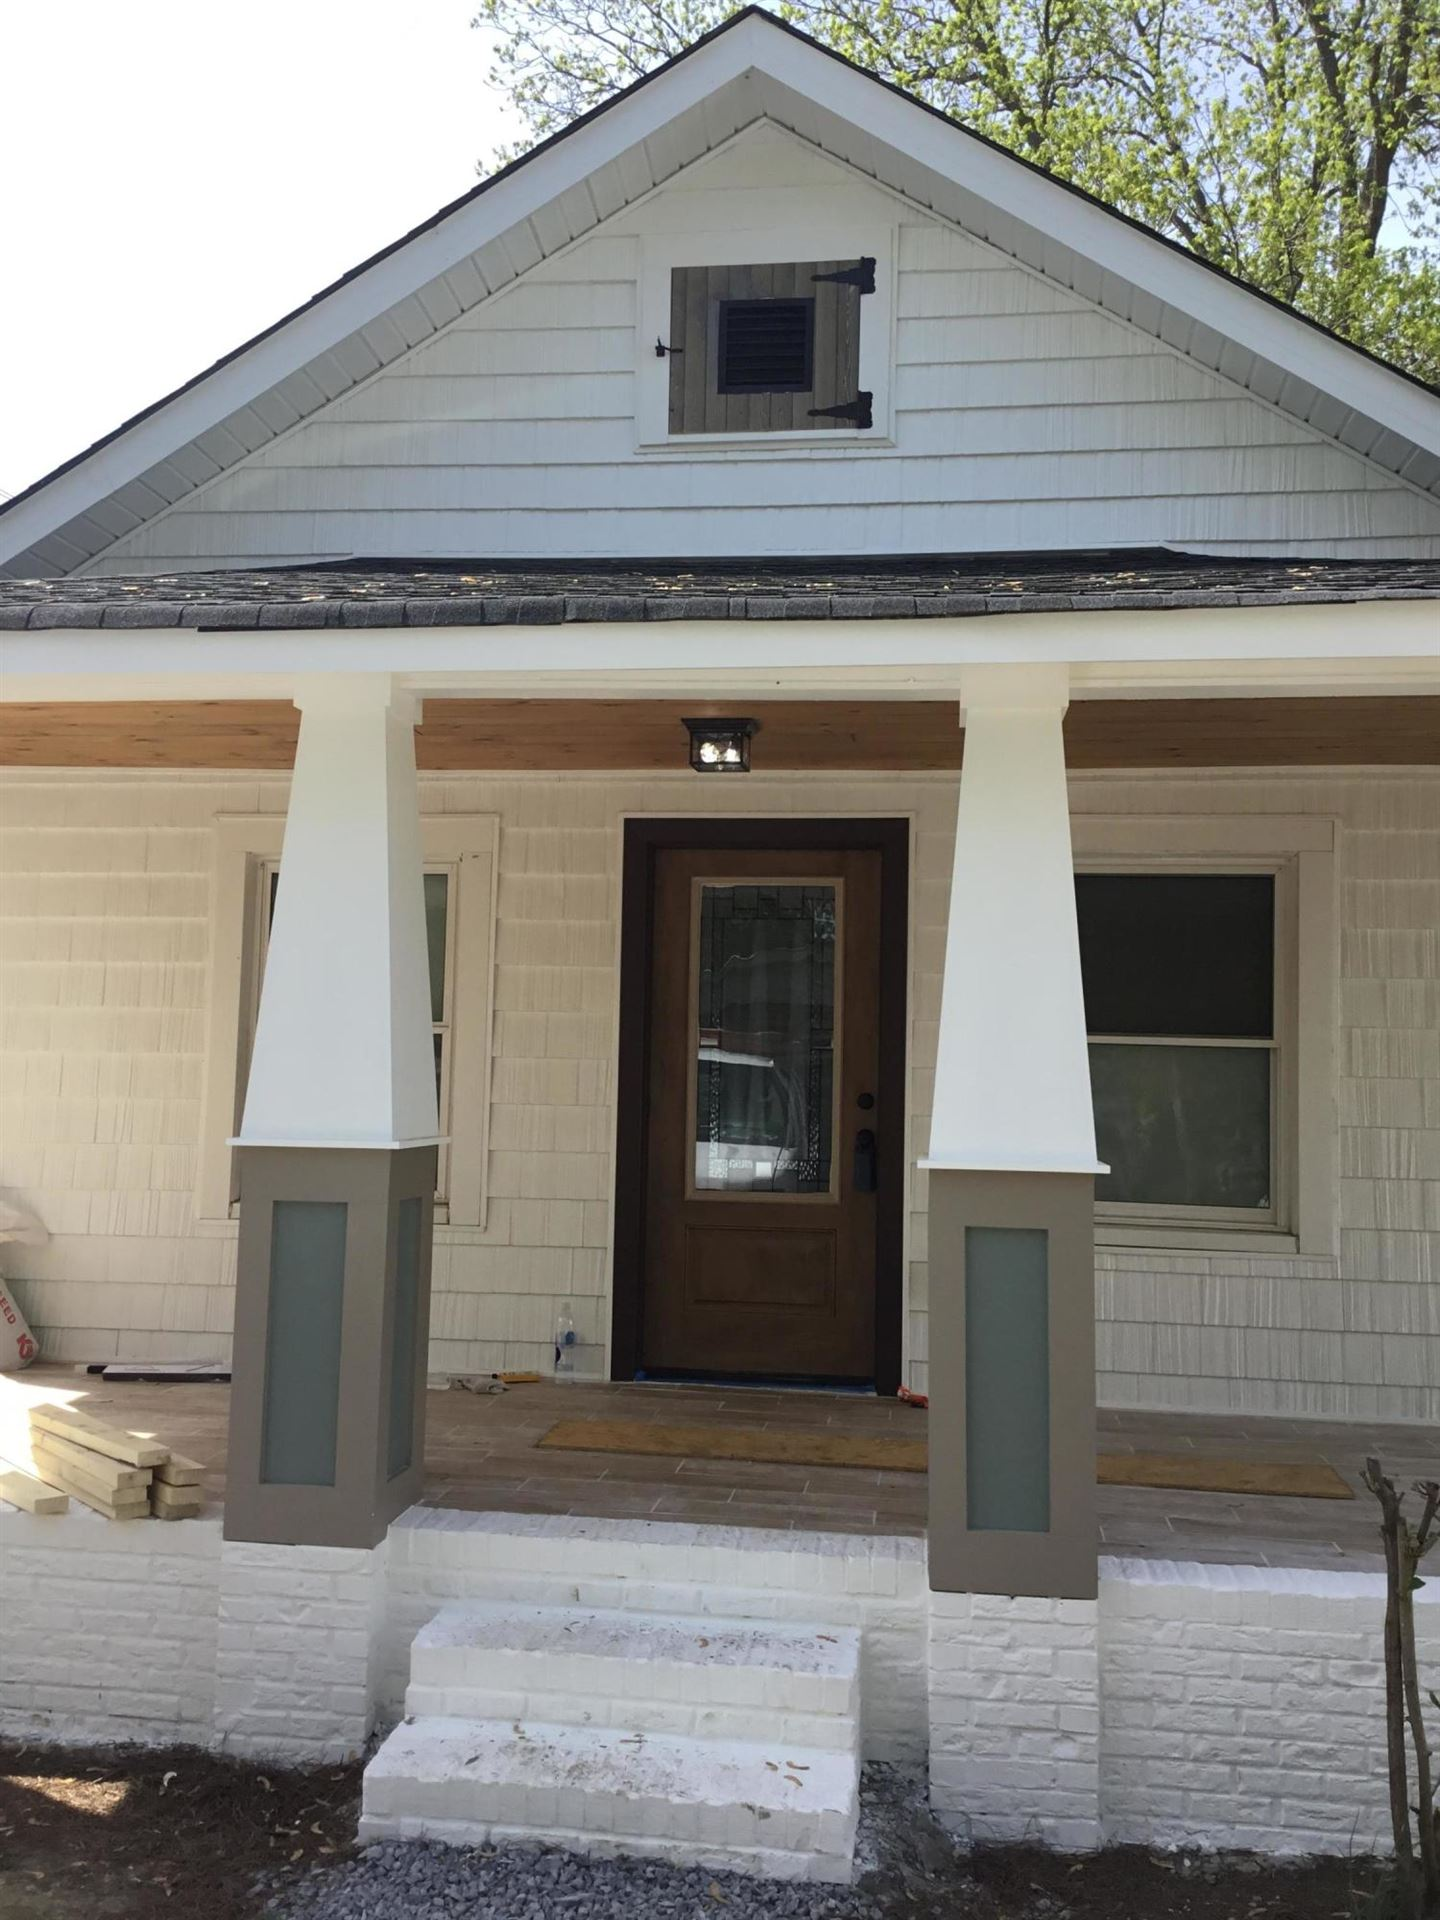 Photo of 109 Springdale St, Maryville, TN 37801 (MLS # 1149583)